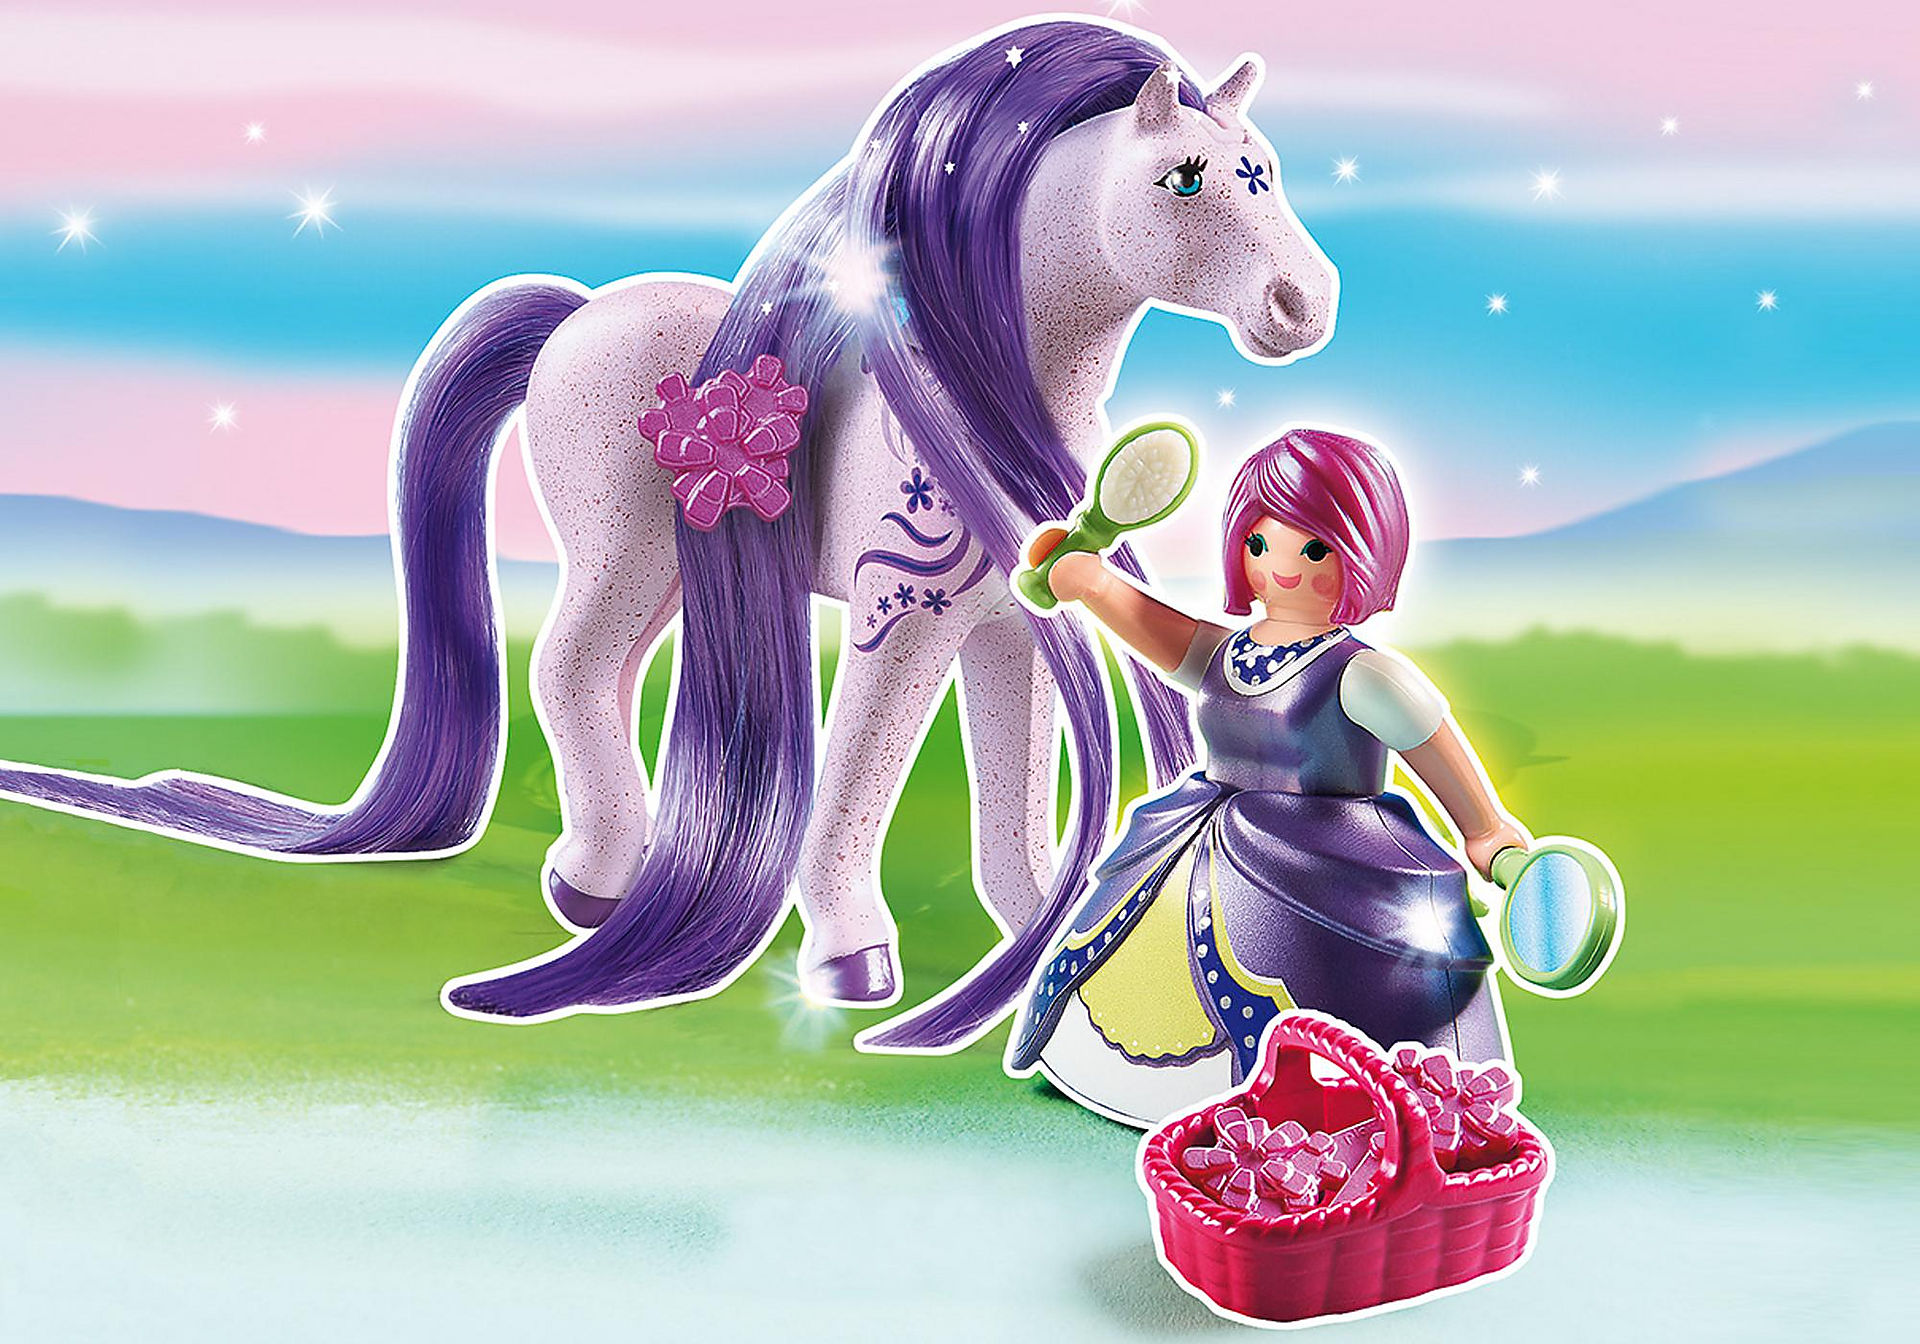 http://media.playmobil.com/i/playmobil/6167_product_detail/Принцесса Виола с Лошадкой